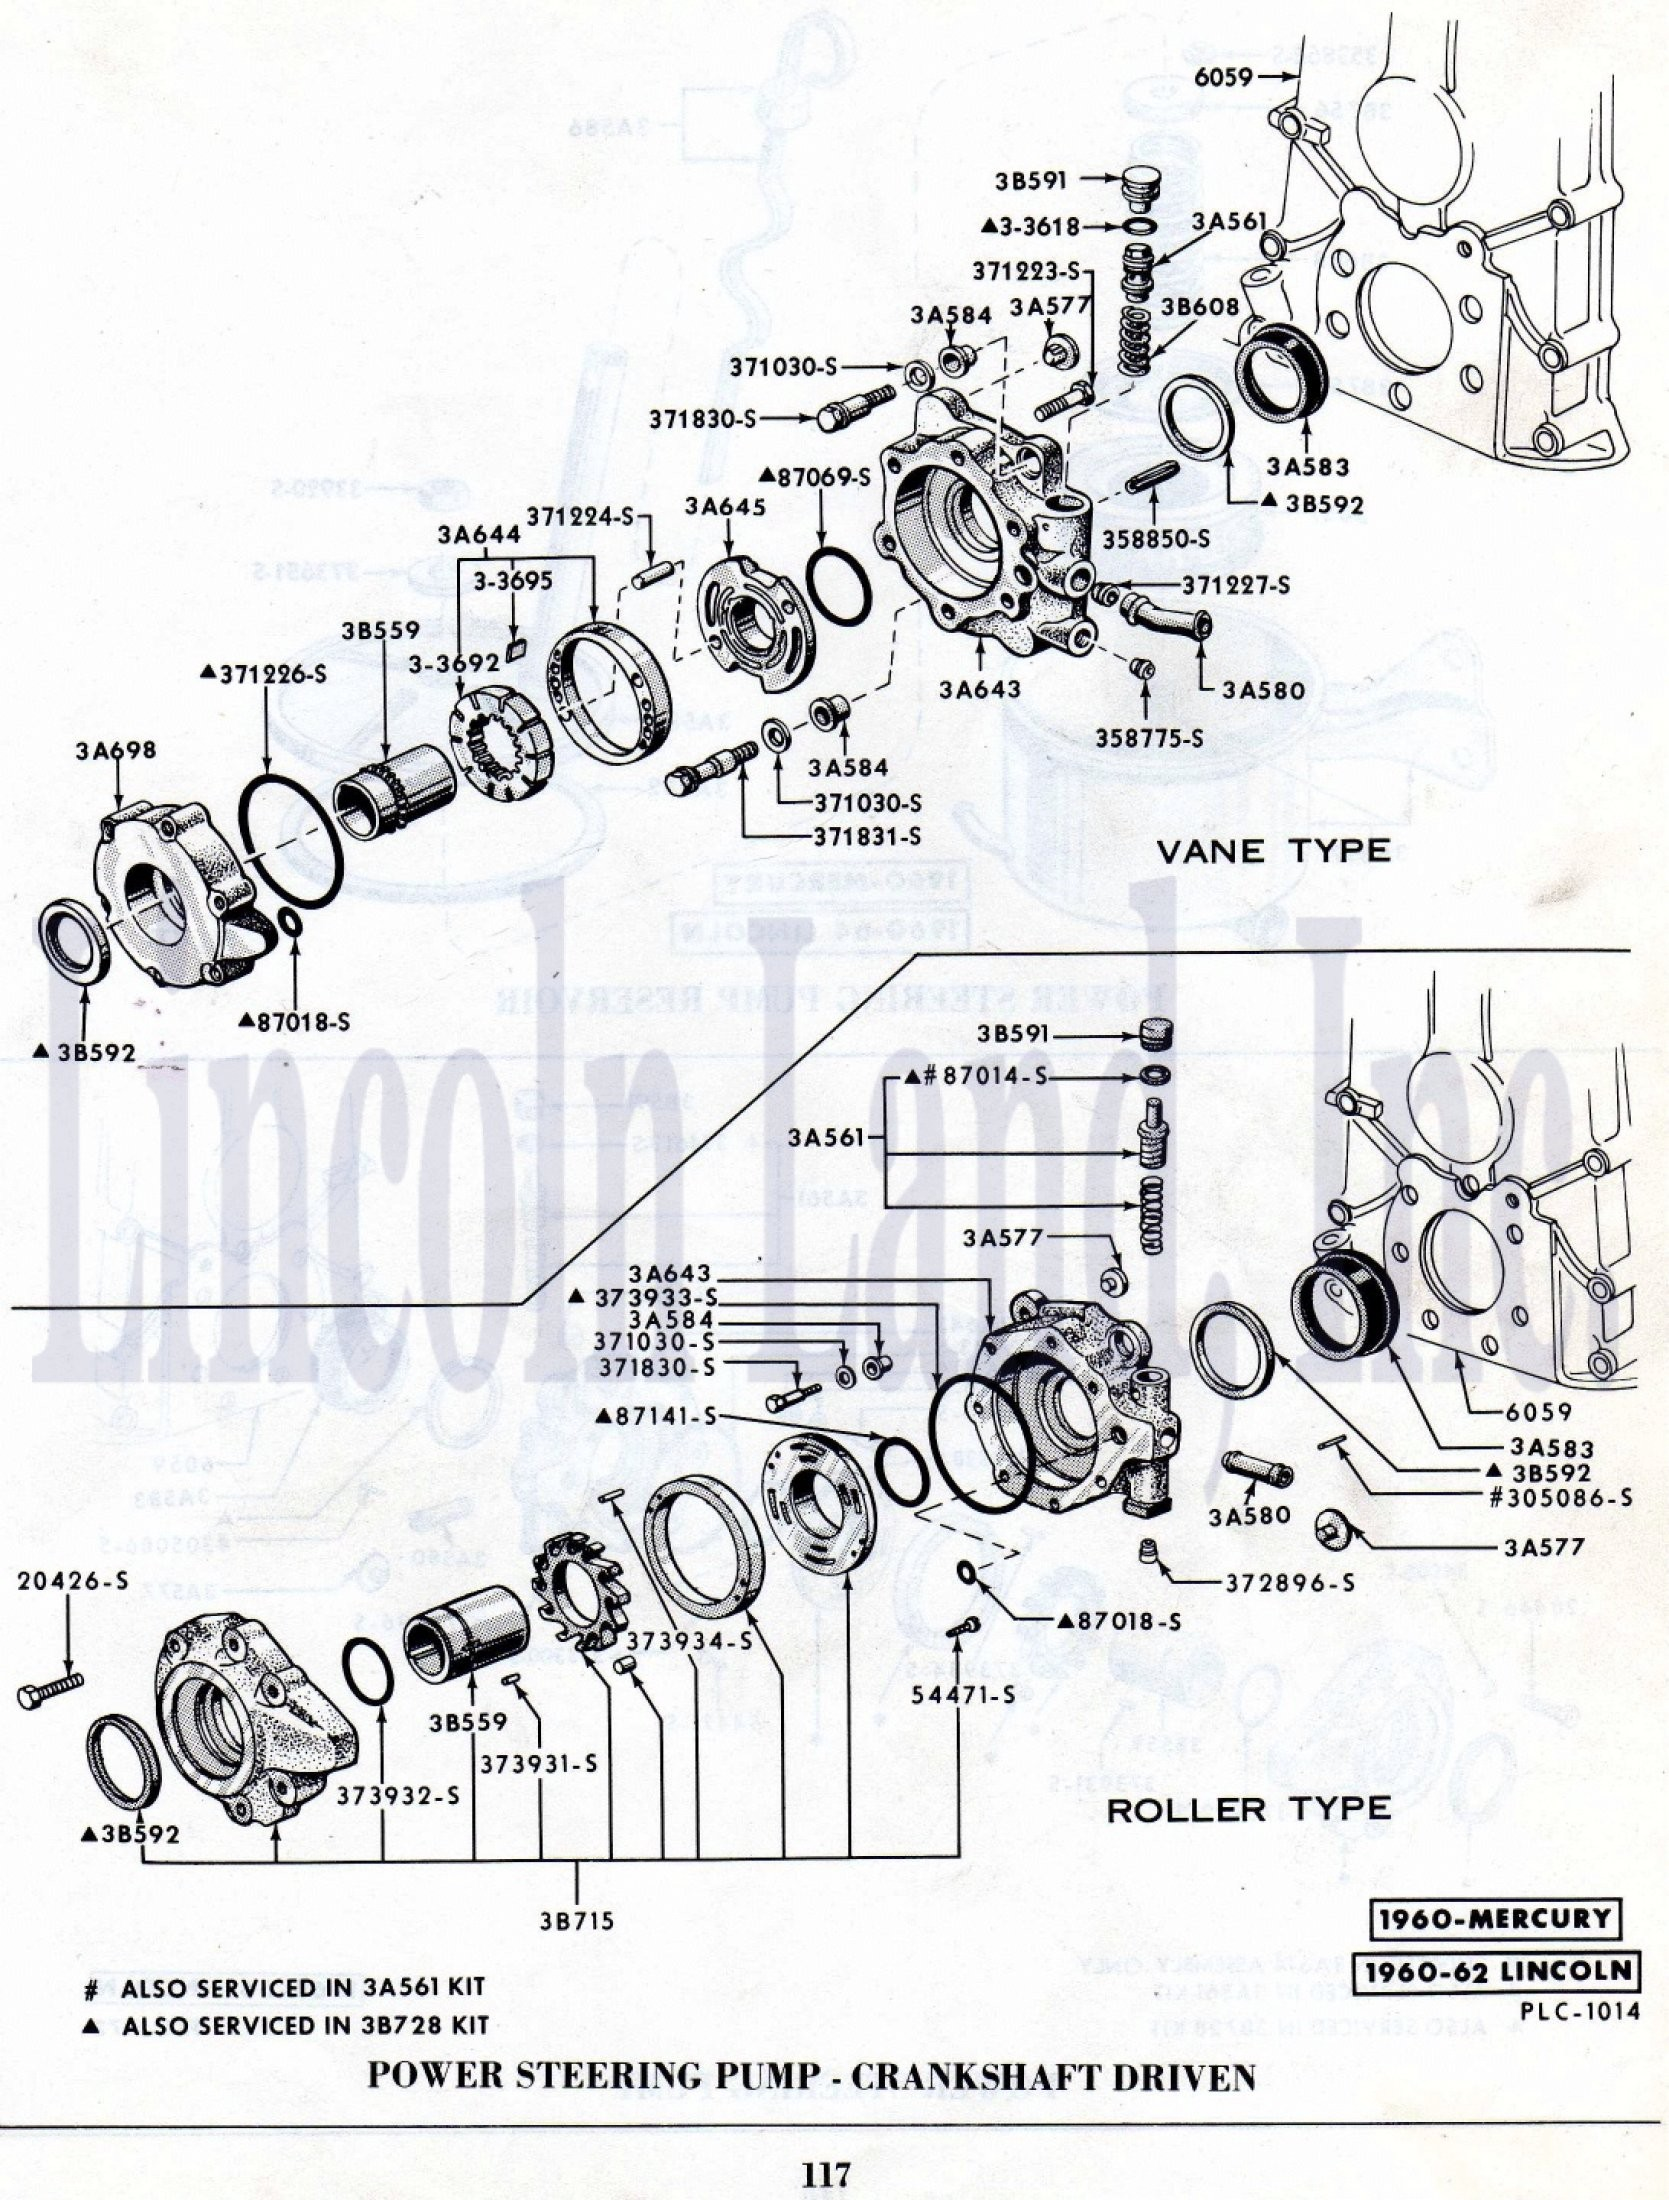 Power Steering System Diagram Vein Style Power Steering Question Squarebirds Of Power Steering System Diagram